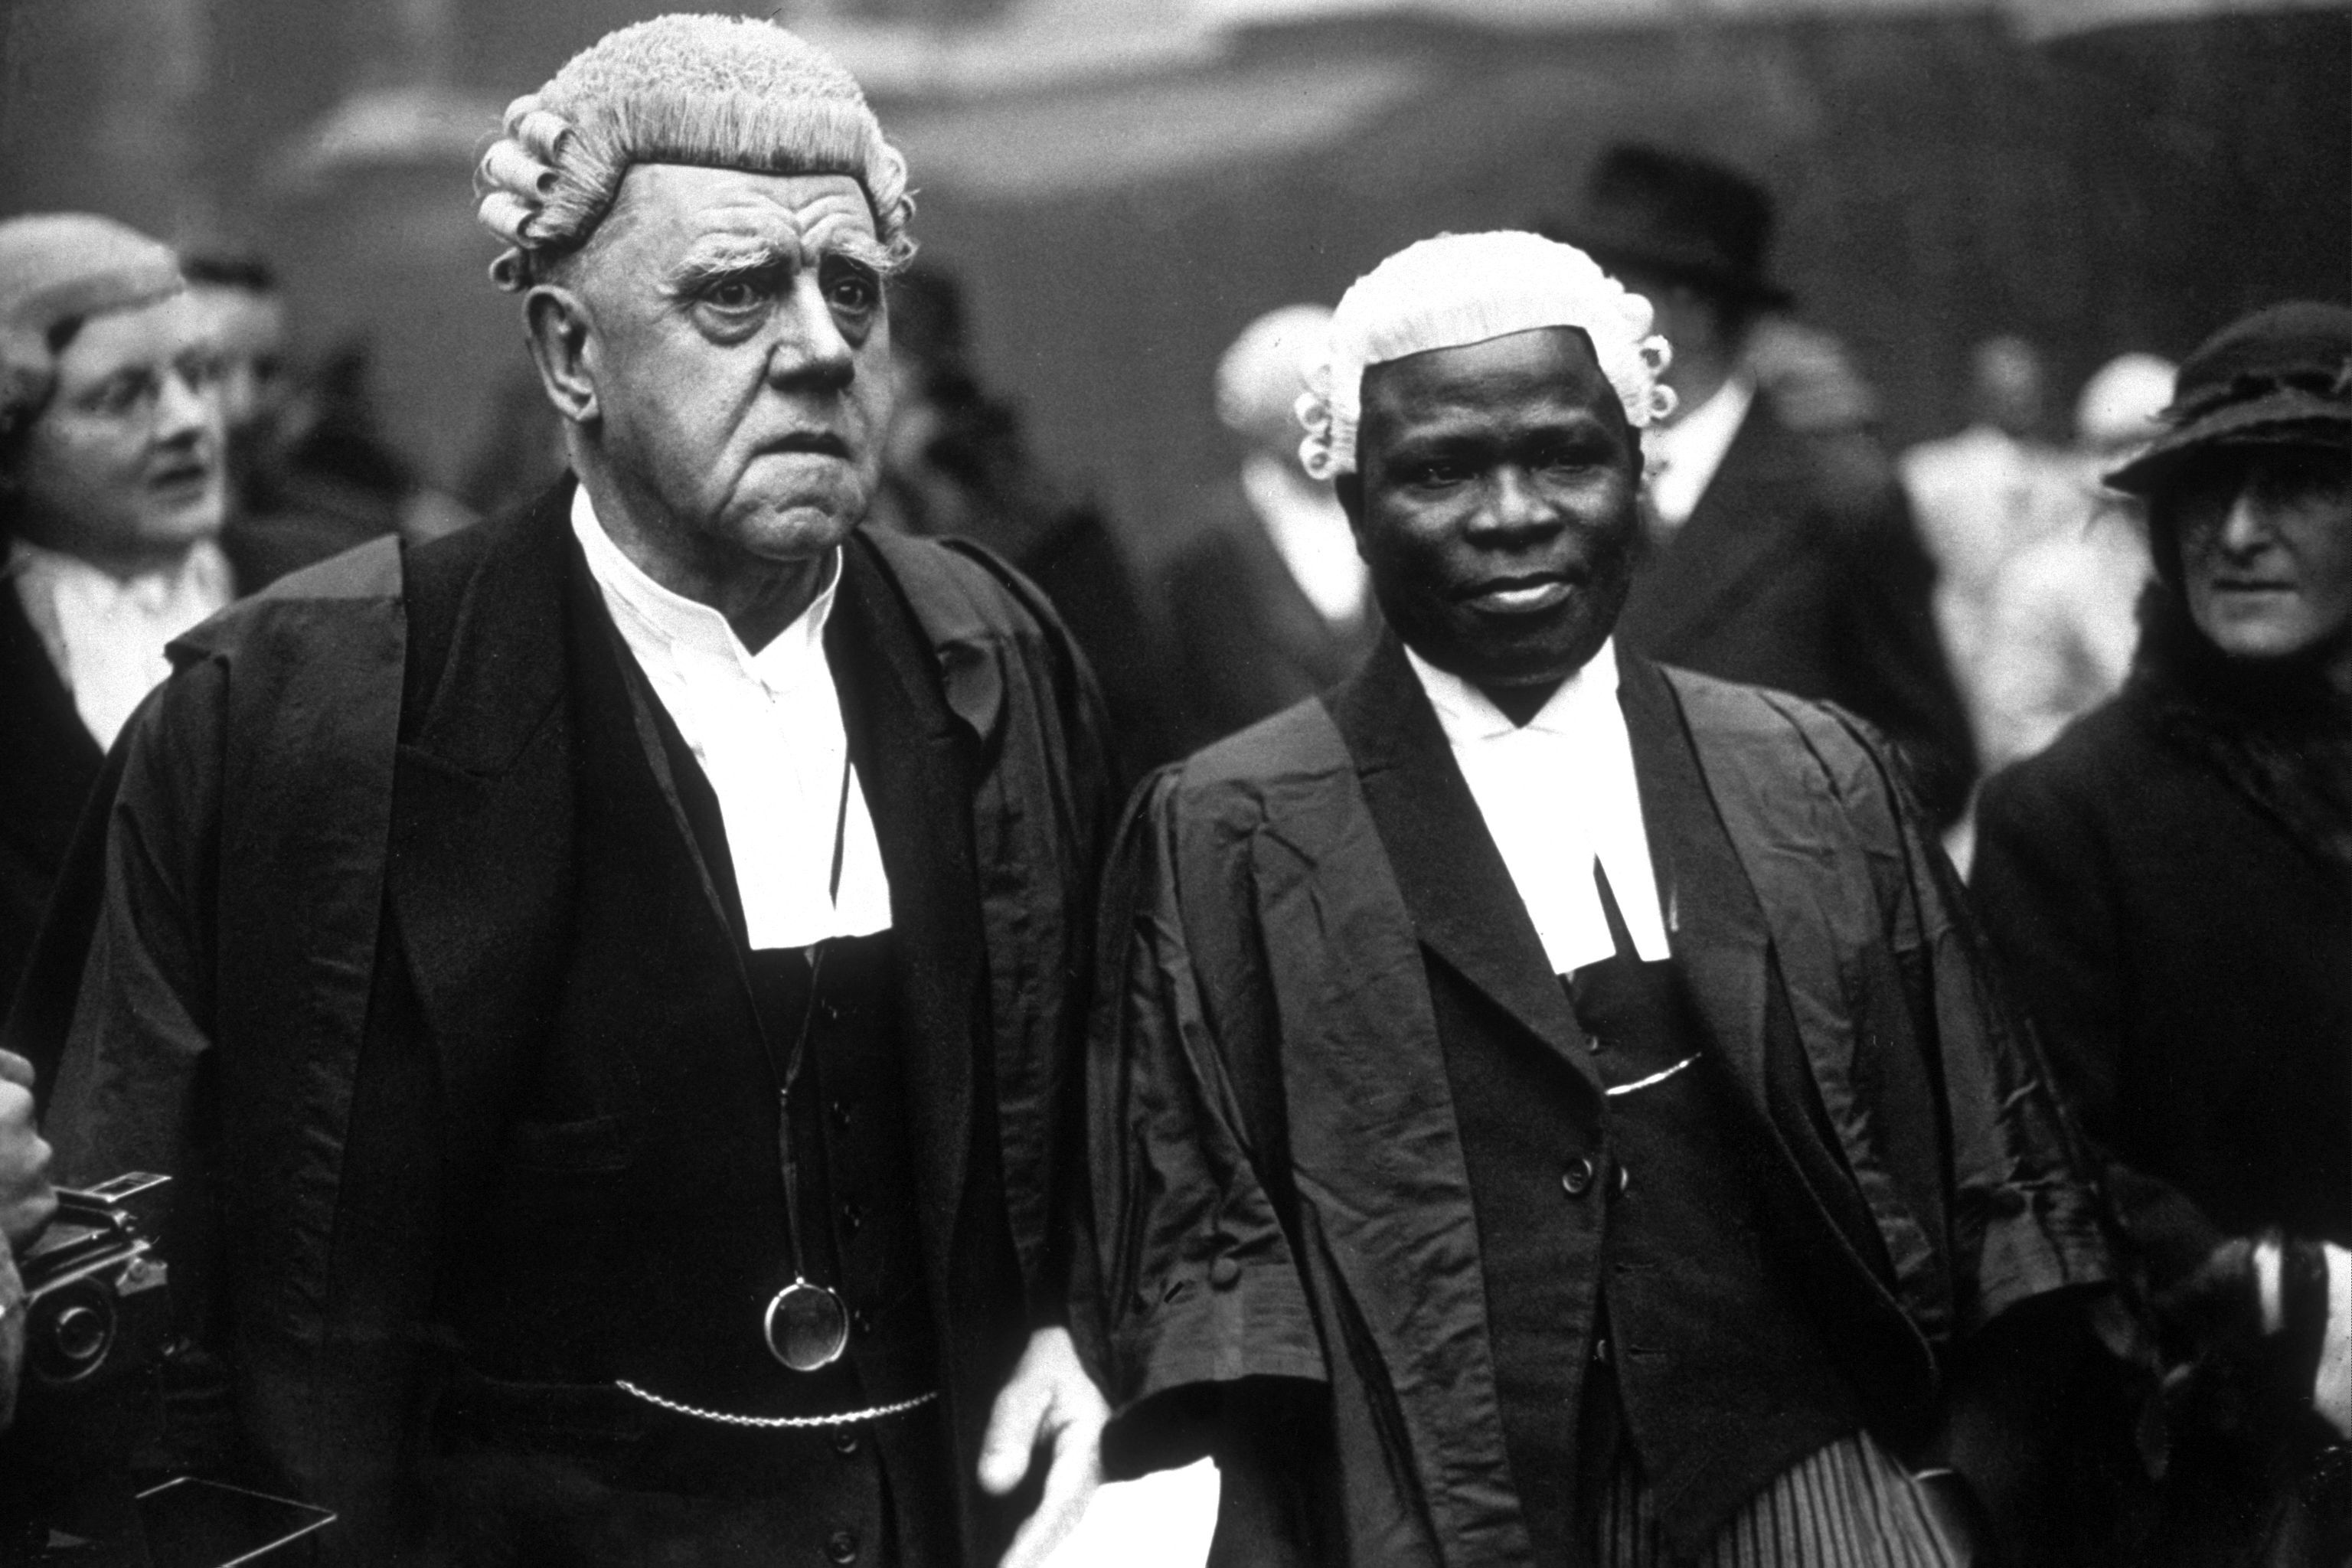 Ladipo Solanke is pictured with a fellow barrister in London in 1936.